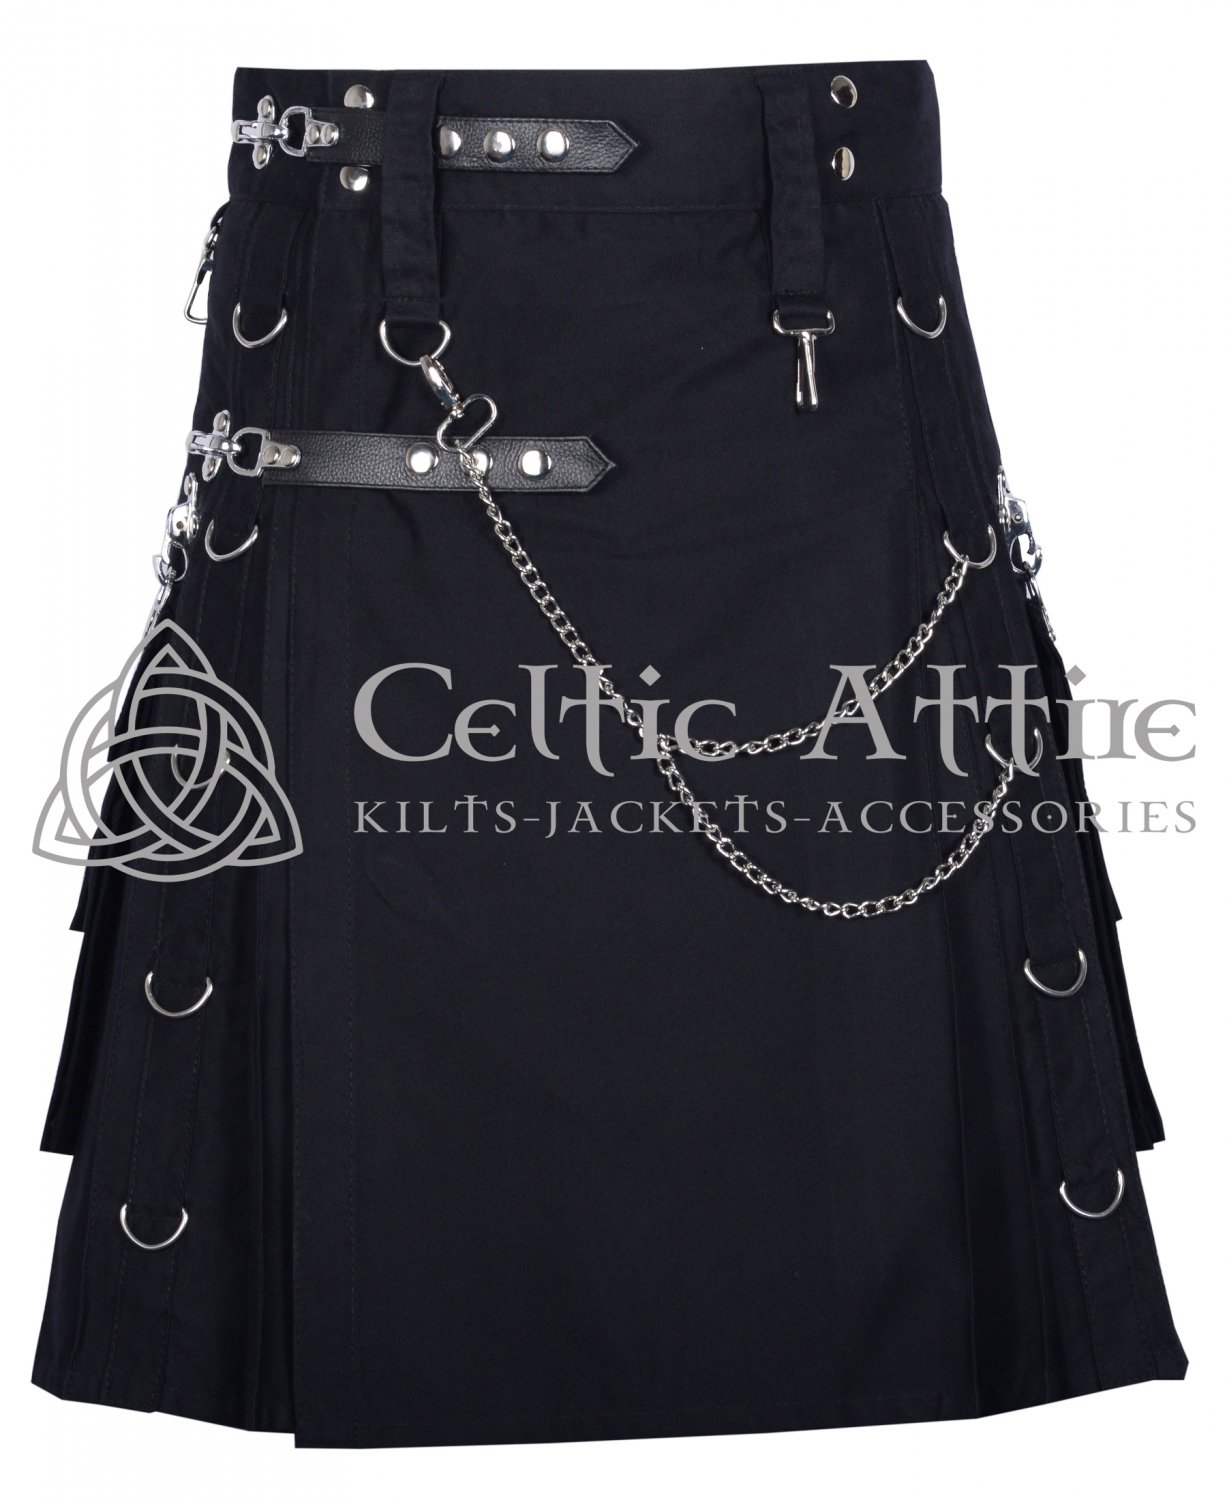 Black Cotton Kilt Gothic Throng With Silver Accessories